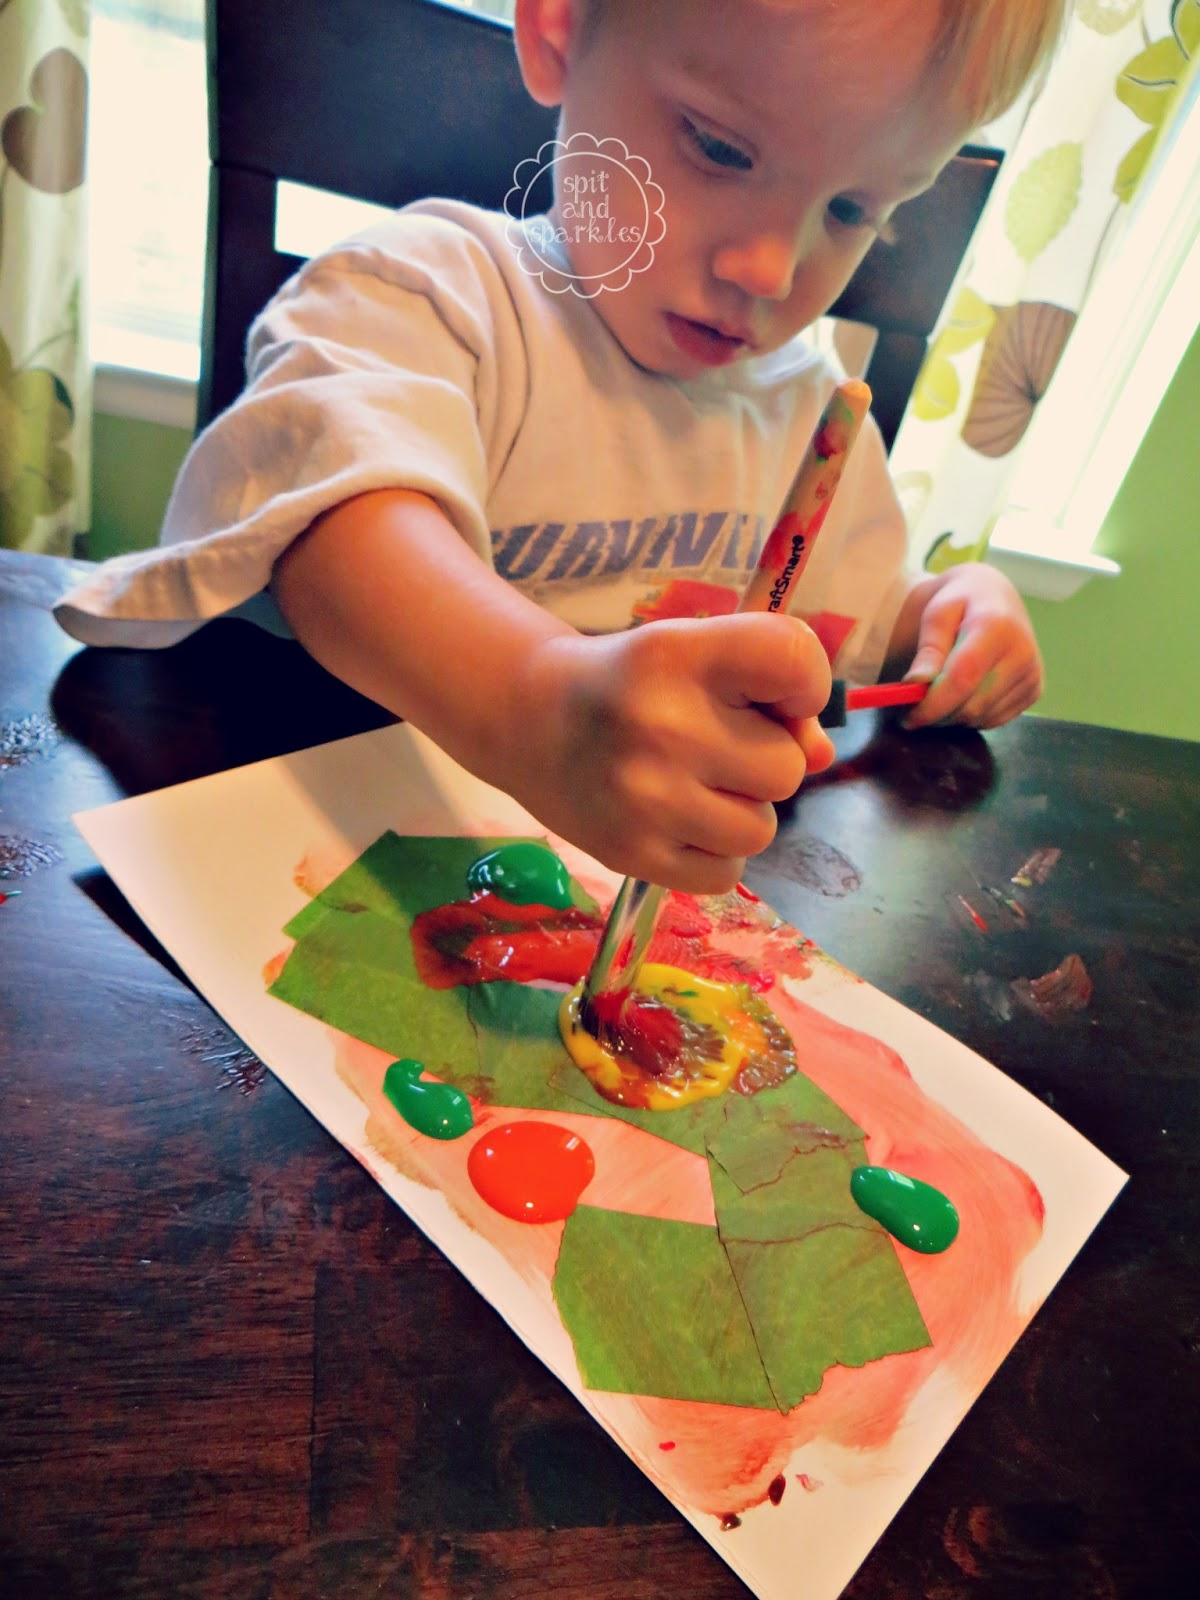 6 Fall Activities for Toddlers #fall #DIY #kidscrafts #totschool #treeart #leaves